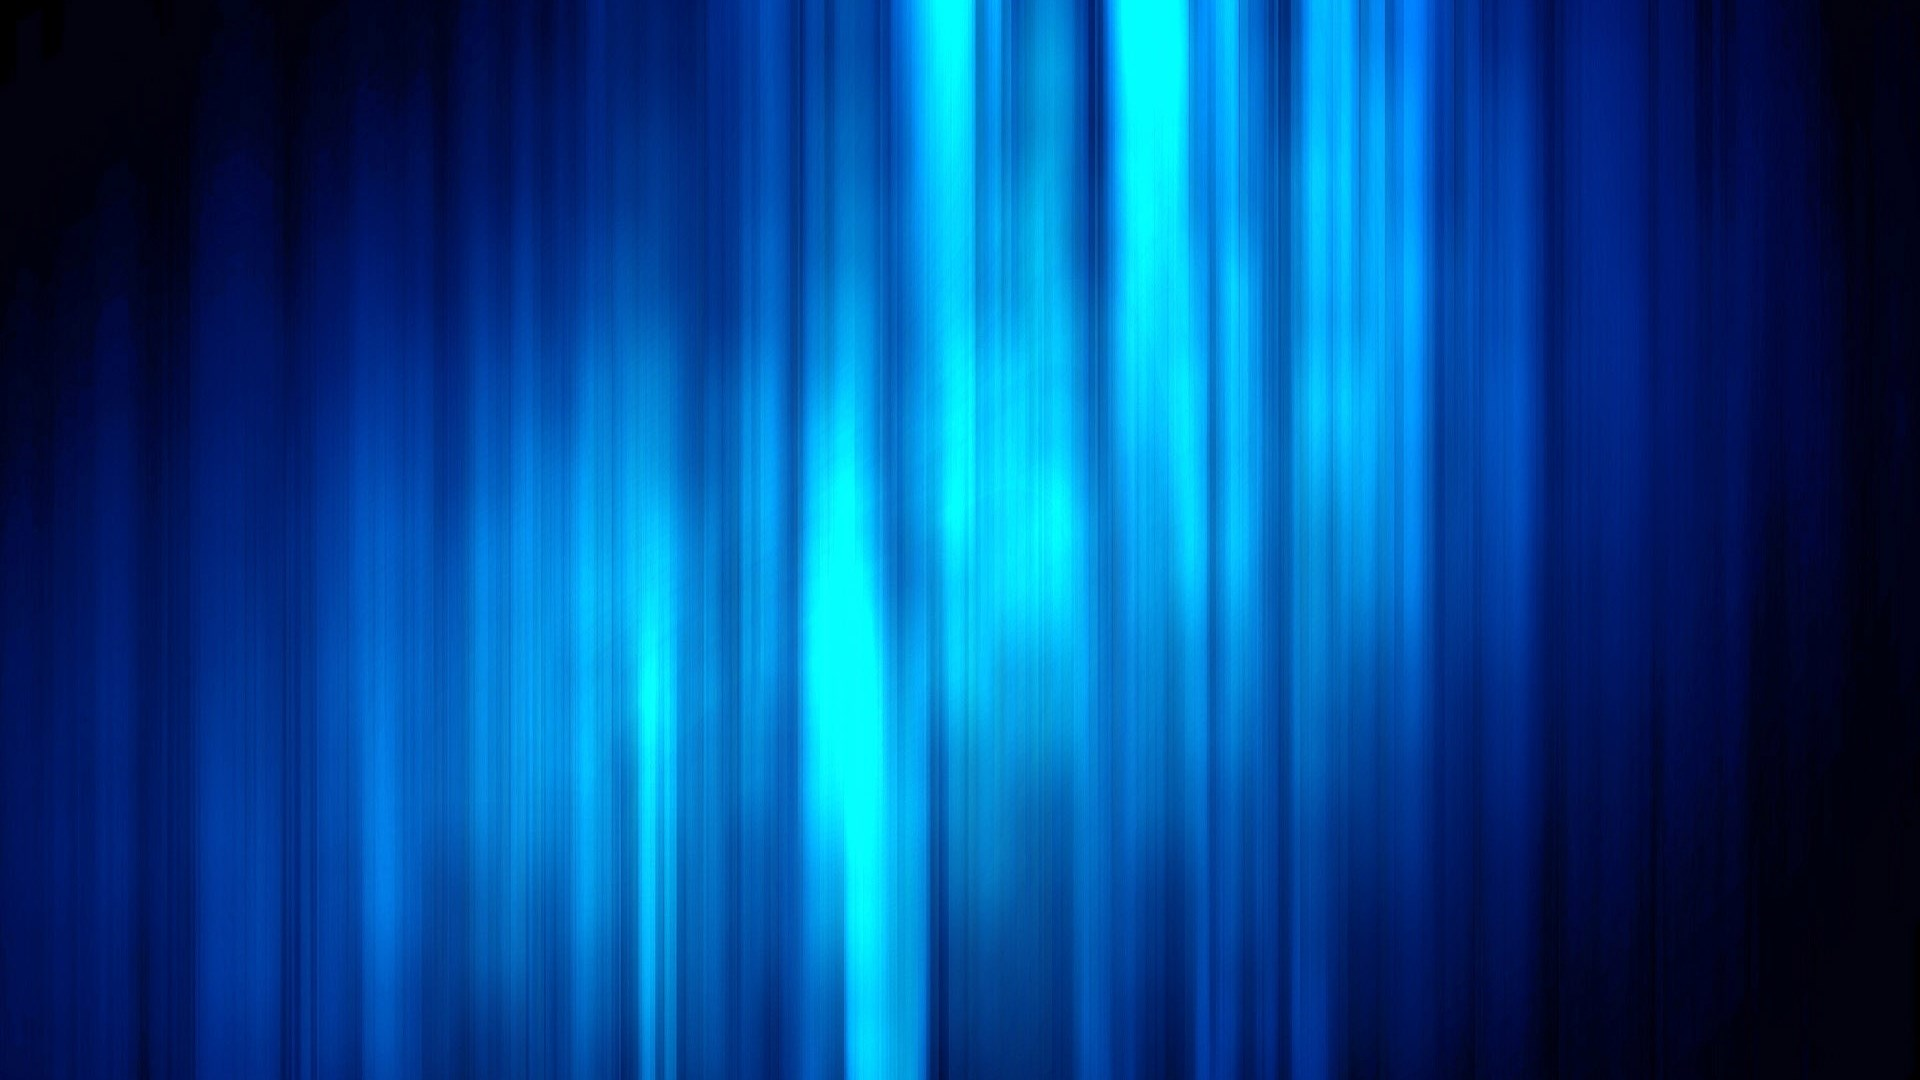 1920x1080-free-desktop-downloads-blue-wallpaper-wpc900686